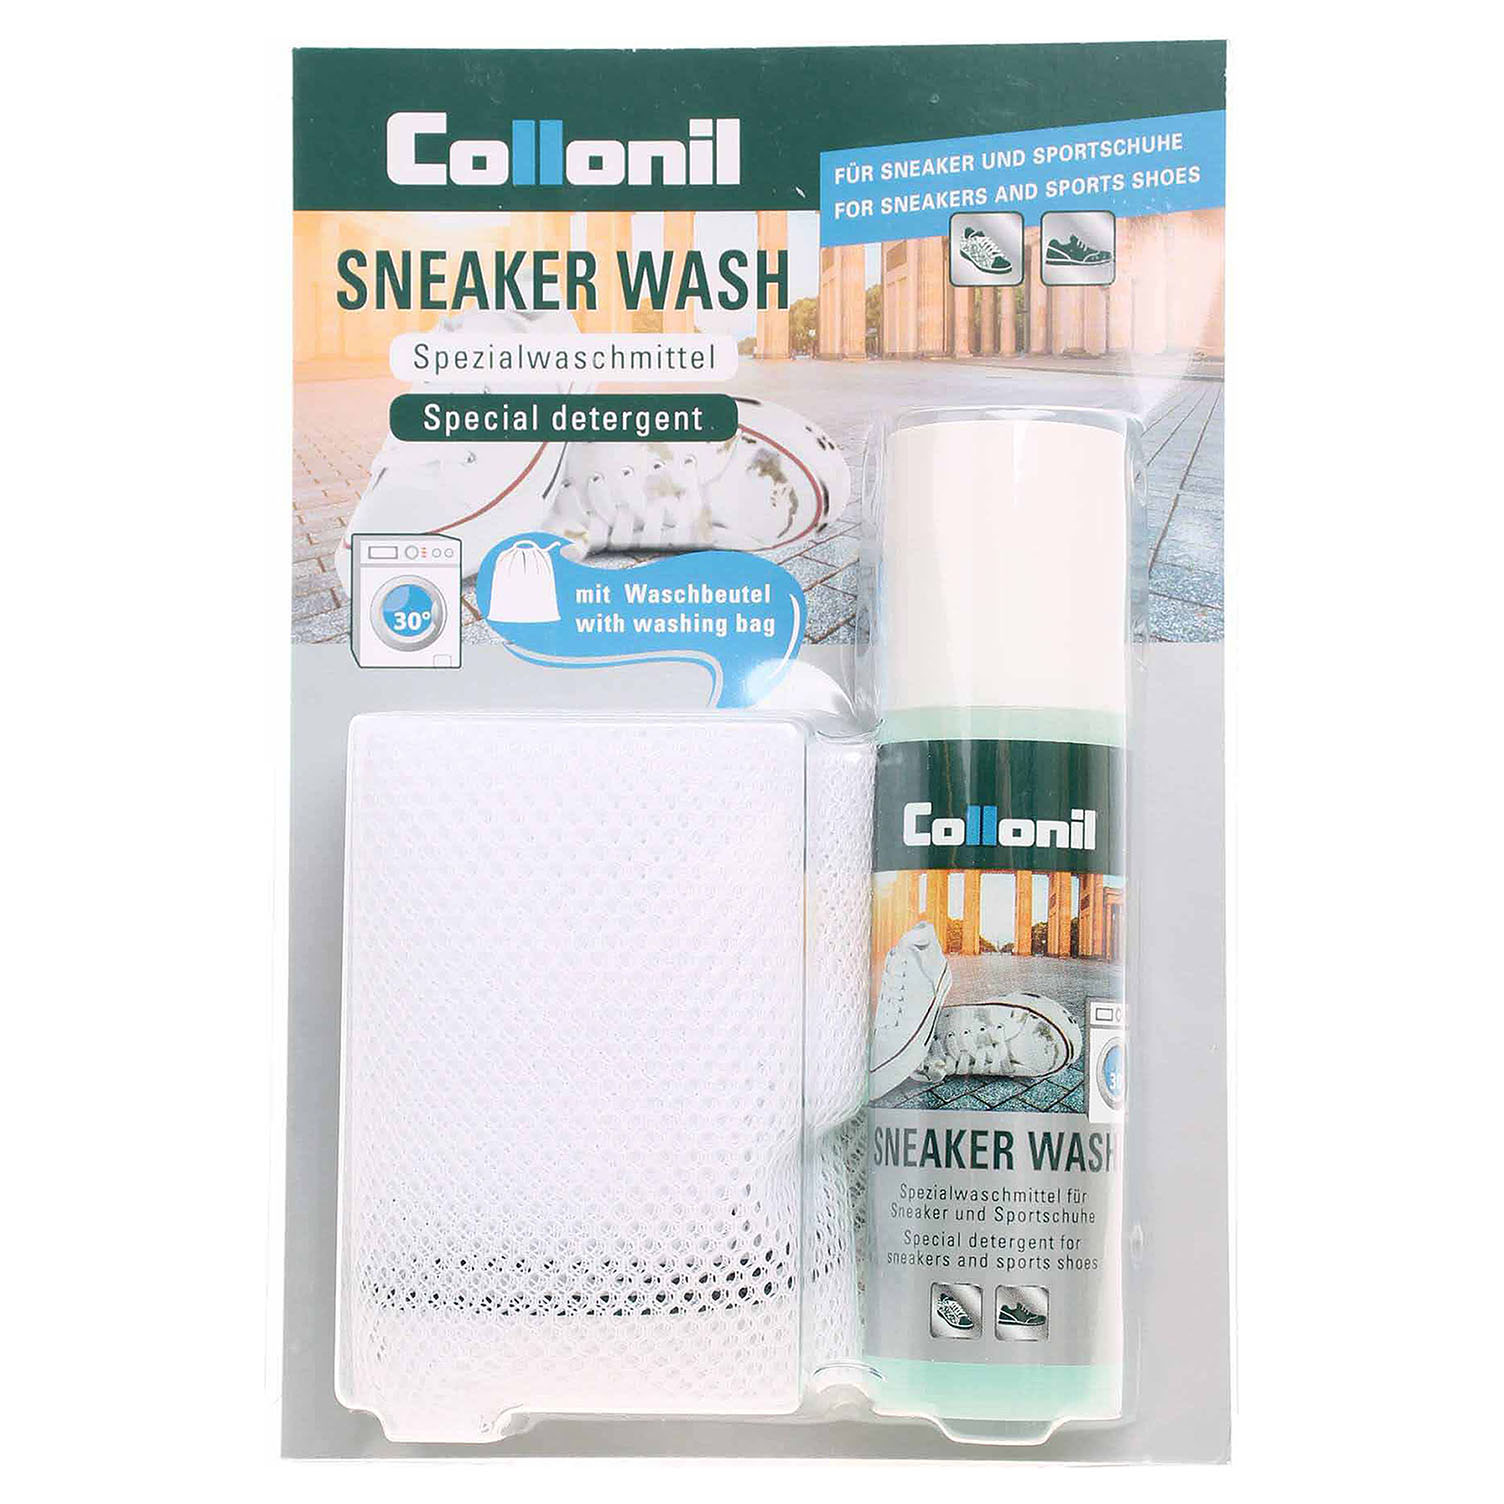 Collonil Sneaker Wash Set